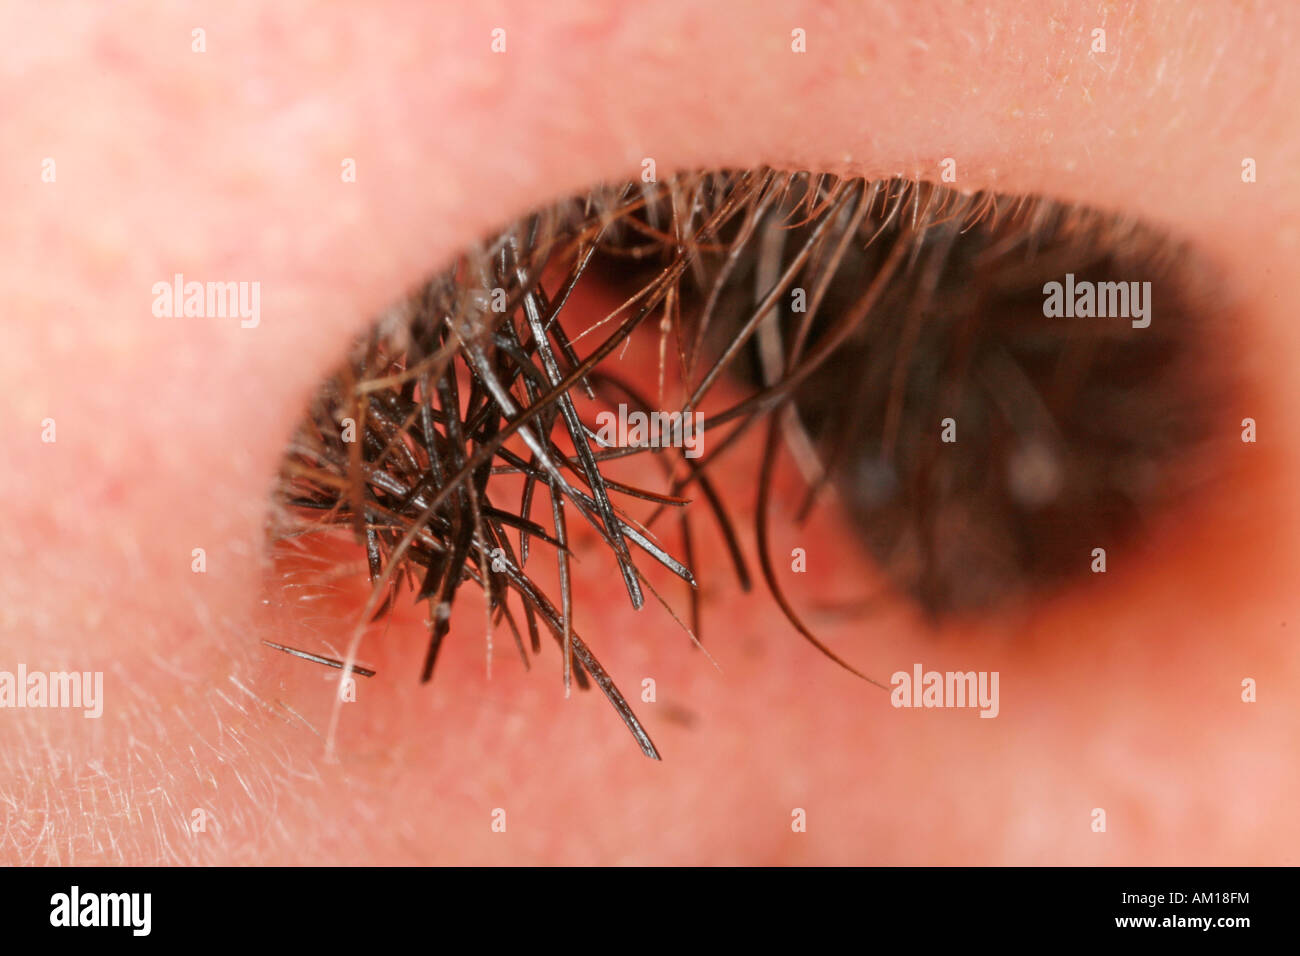 Vibrissae - hair growing out of a man's nose Stock Photo